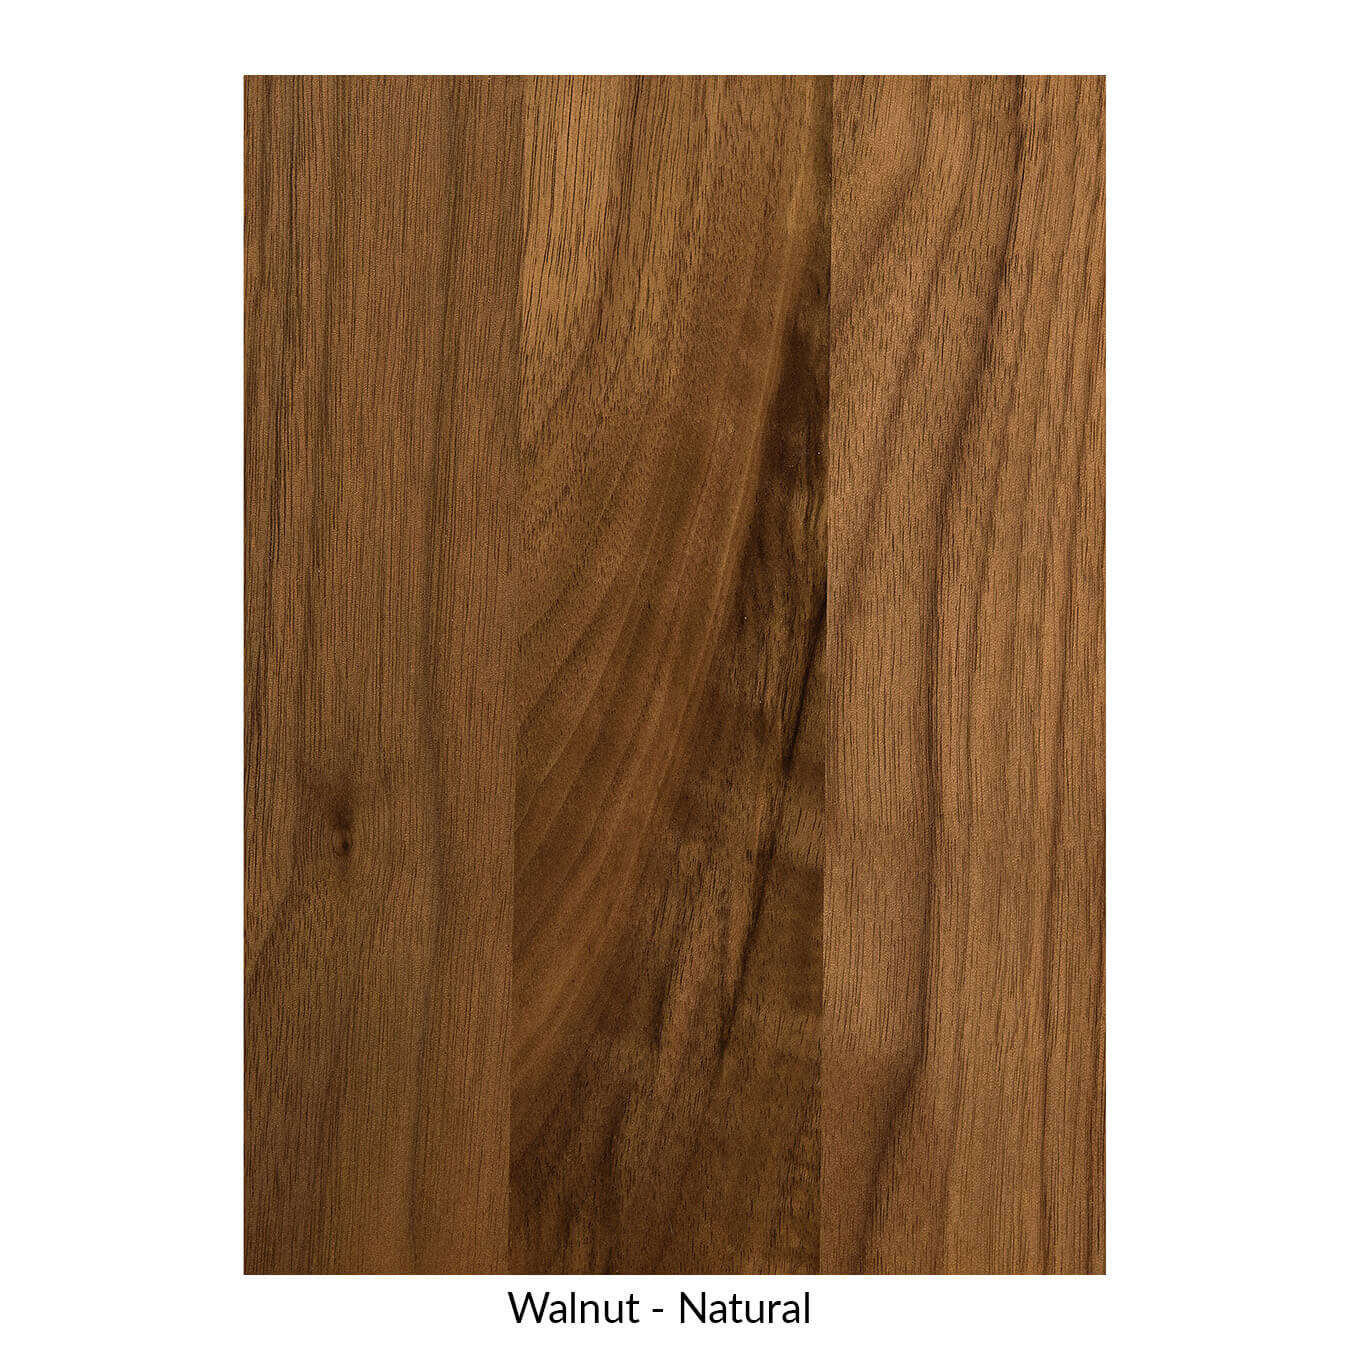 spectrum-walnut-natural.jpg